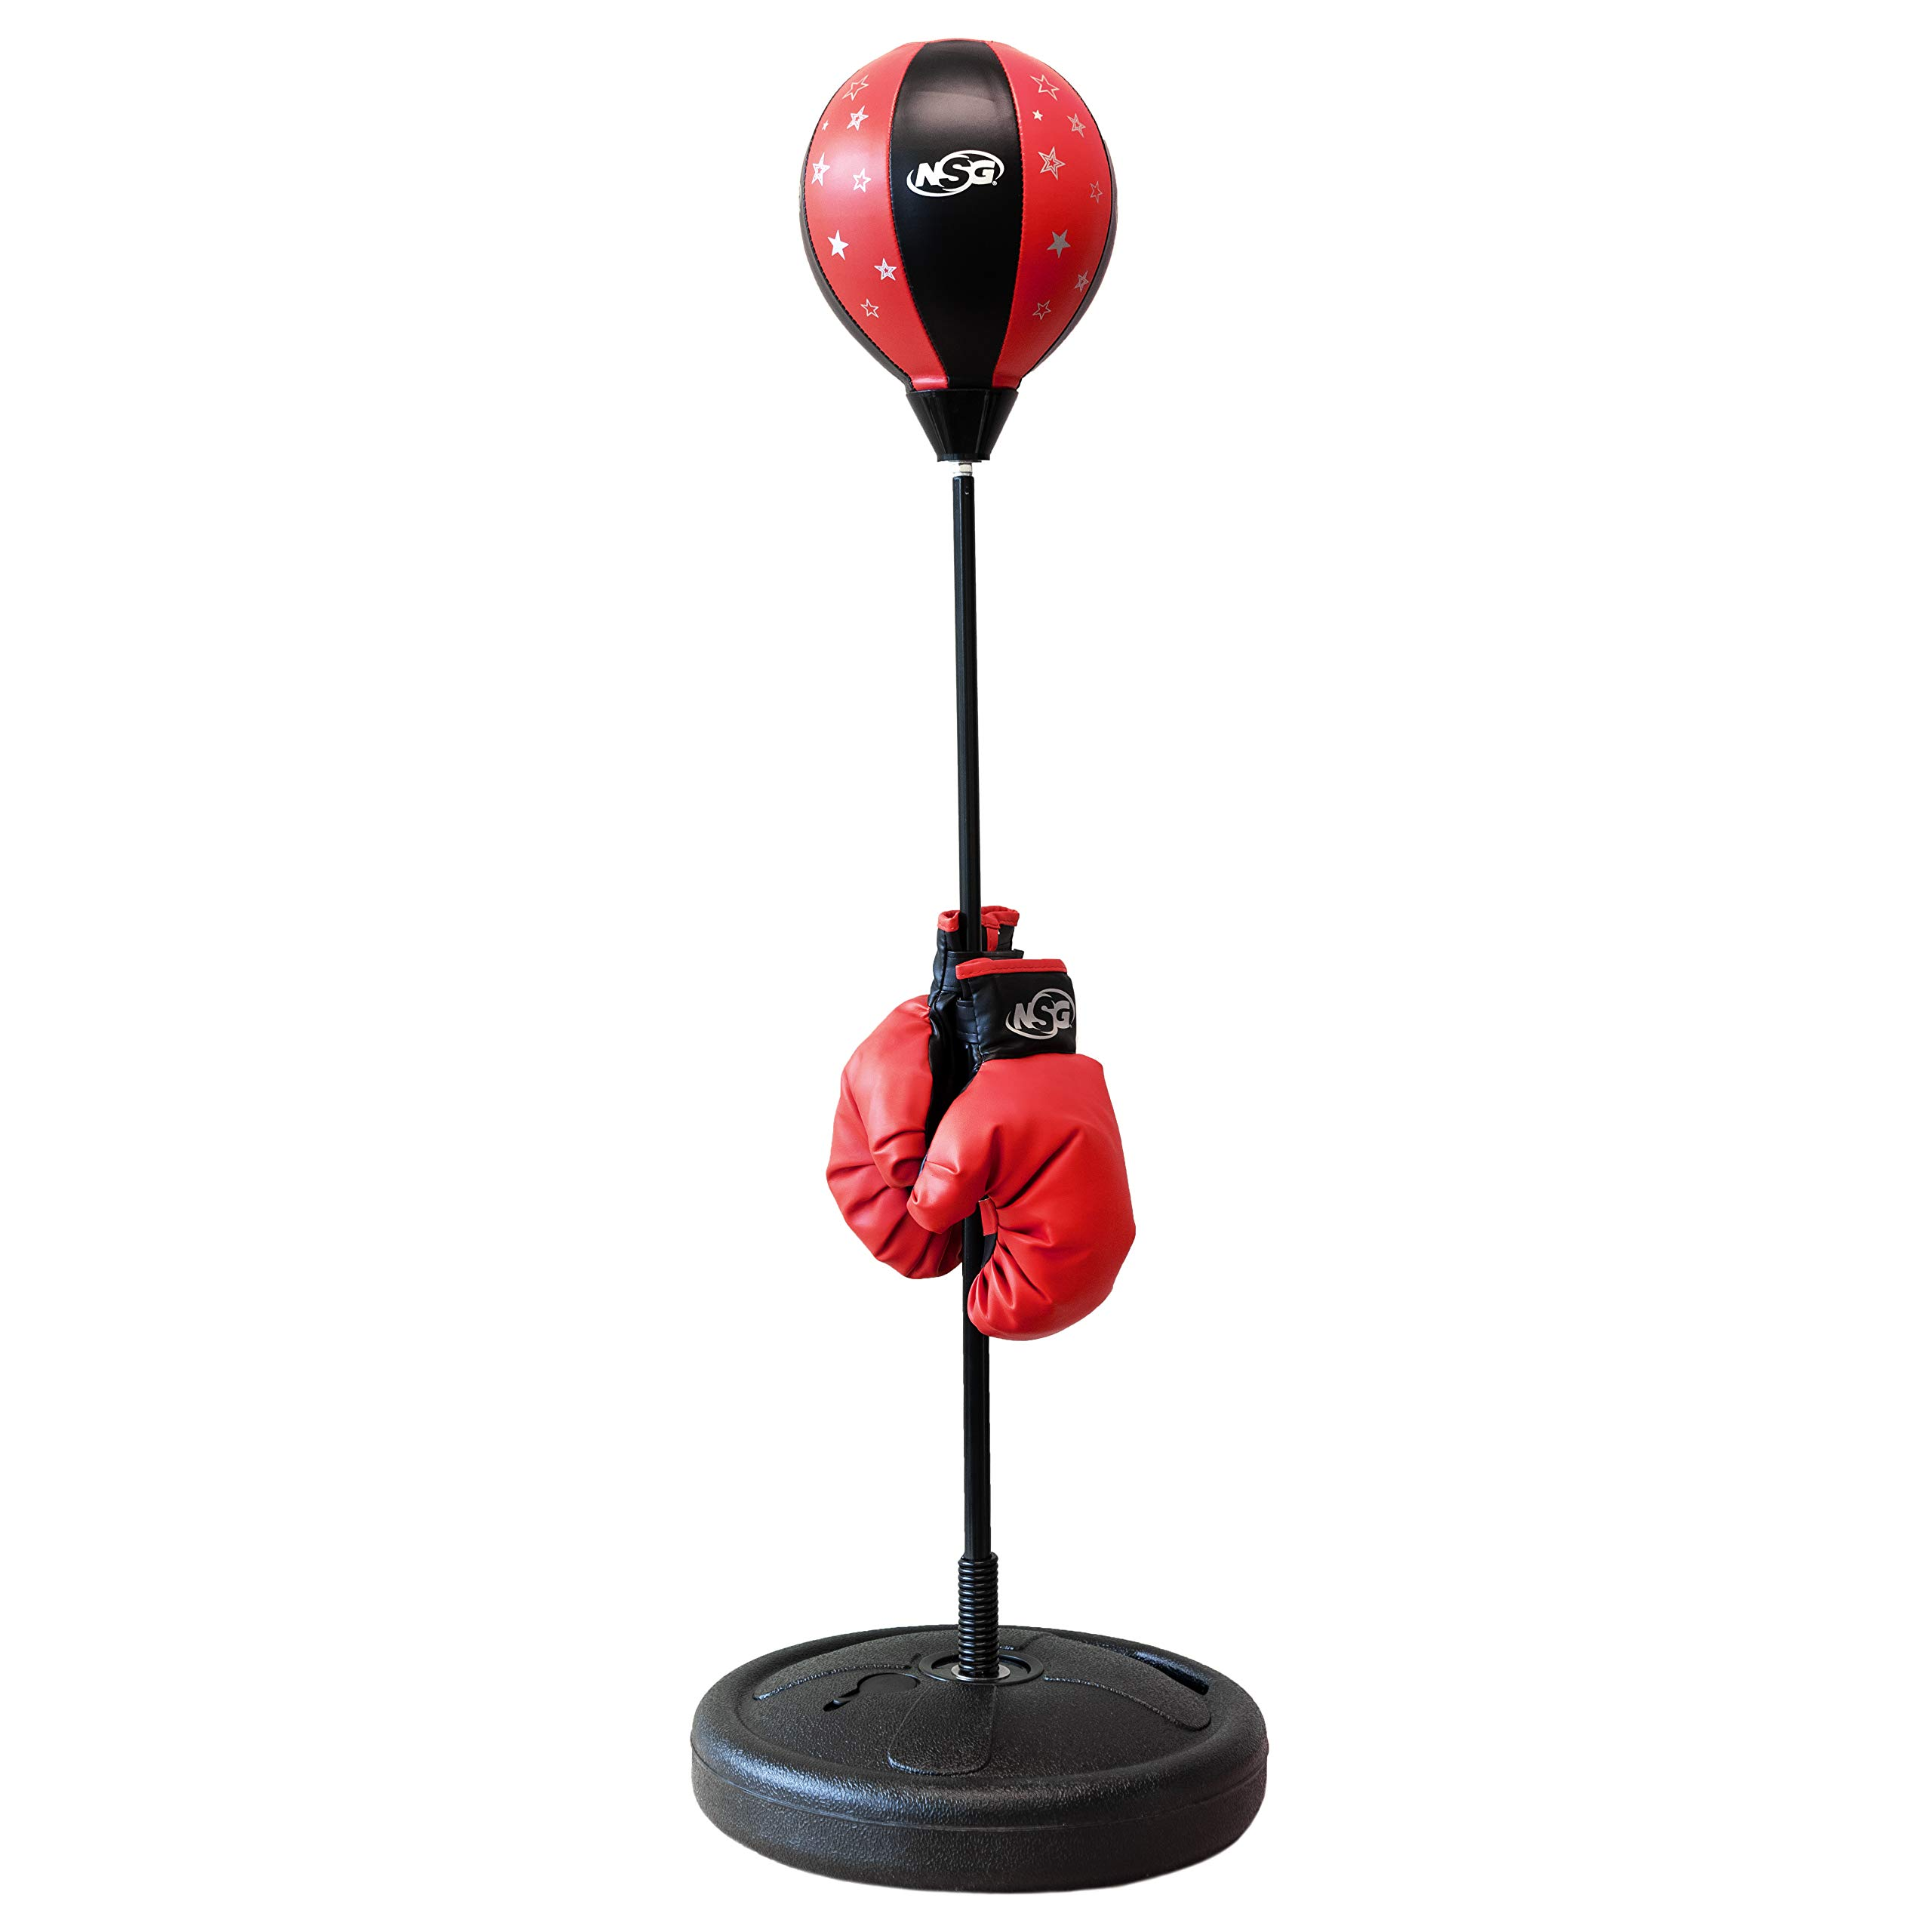 NSG Jr Training Boxing Set for Kids - Bounce Back Punching Ball, Adjustable Stand, Pump, & Boxing Gloves for Boys and Girls, Red/Black by NSG